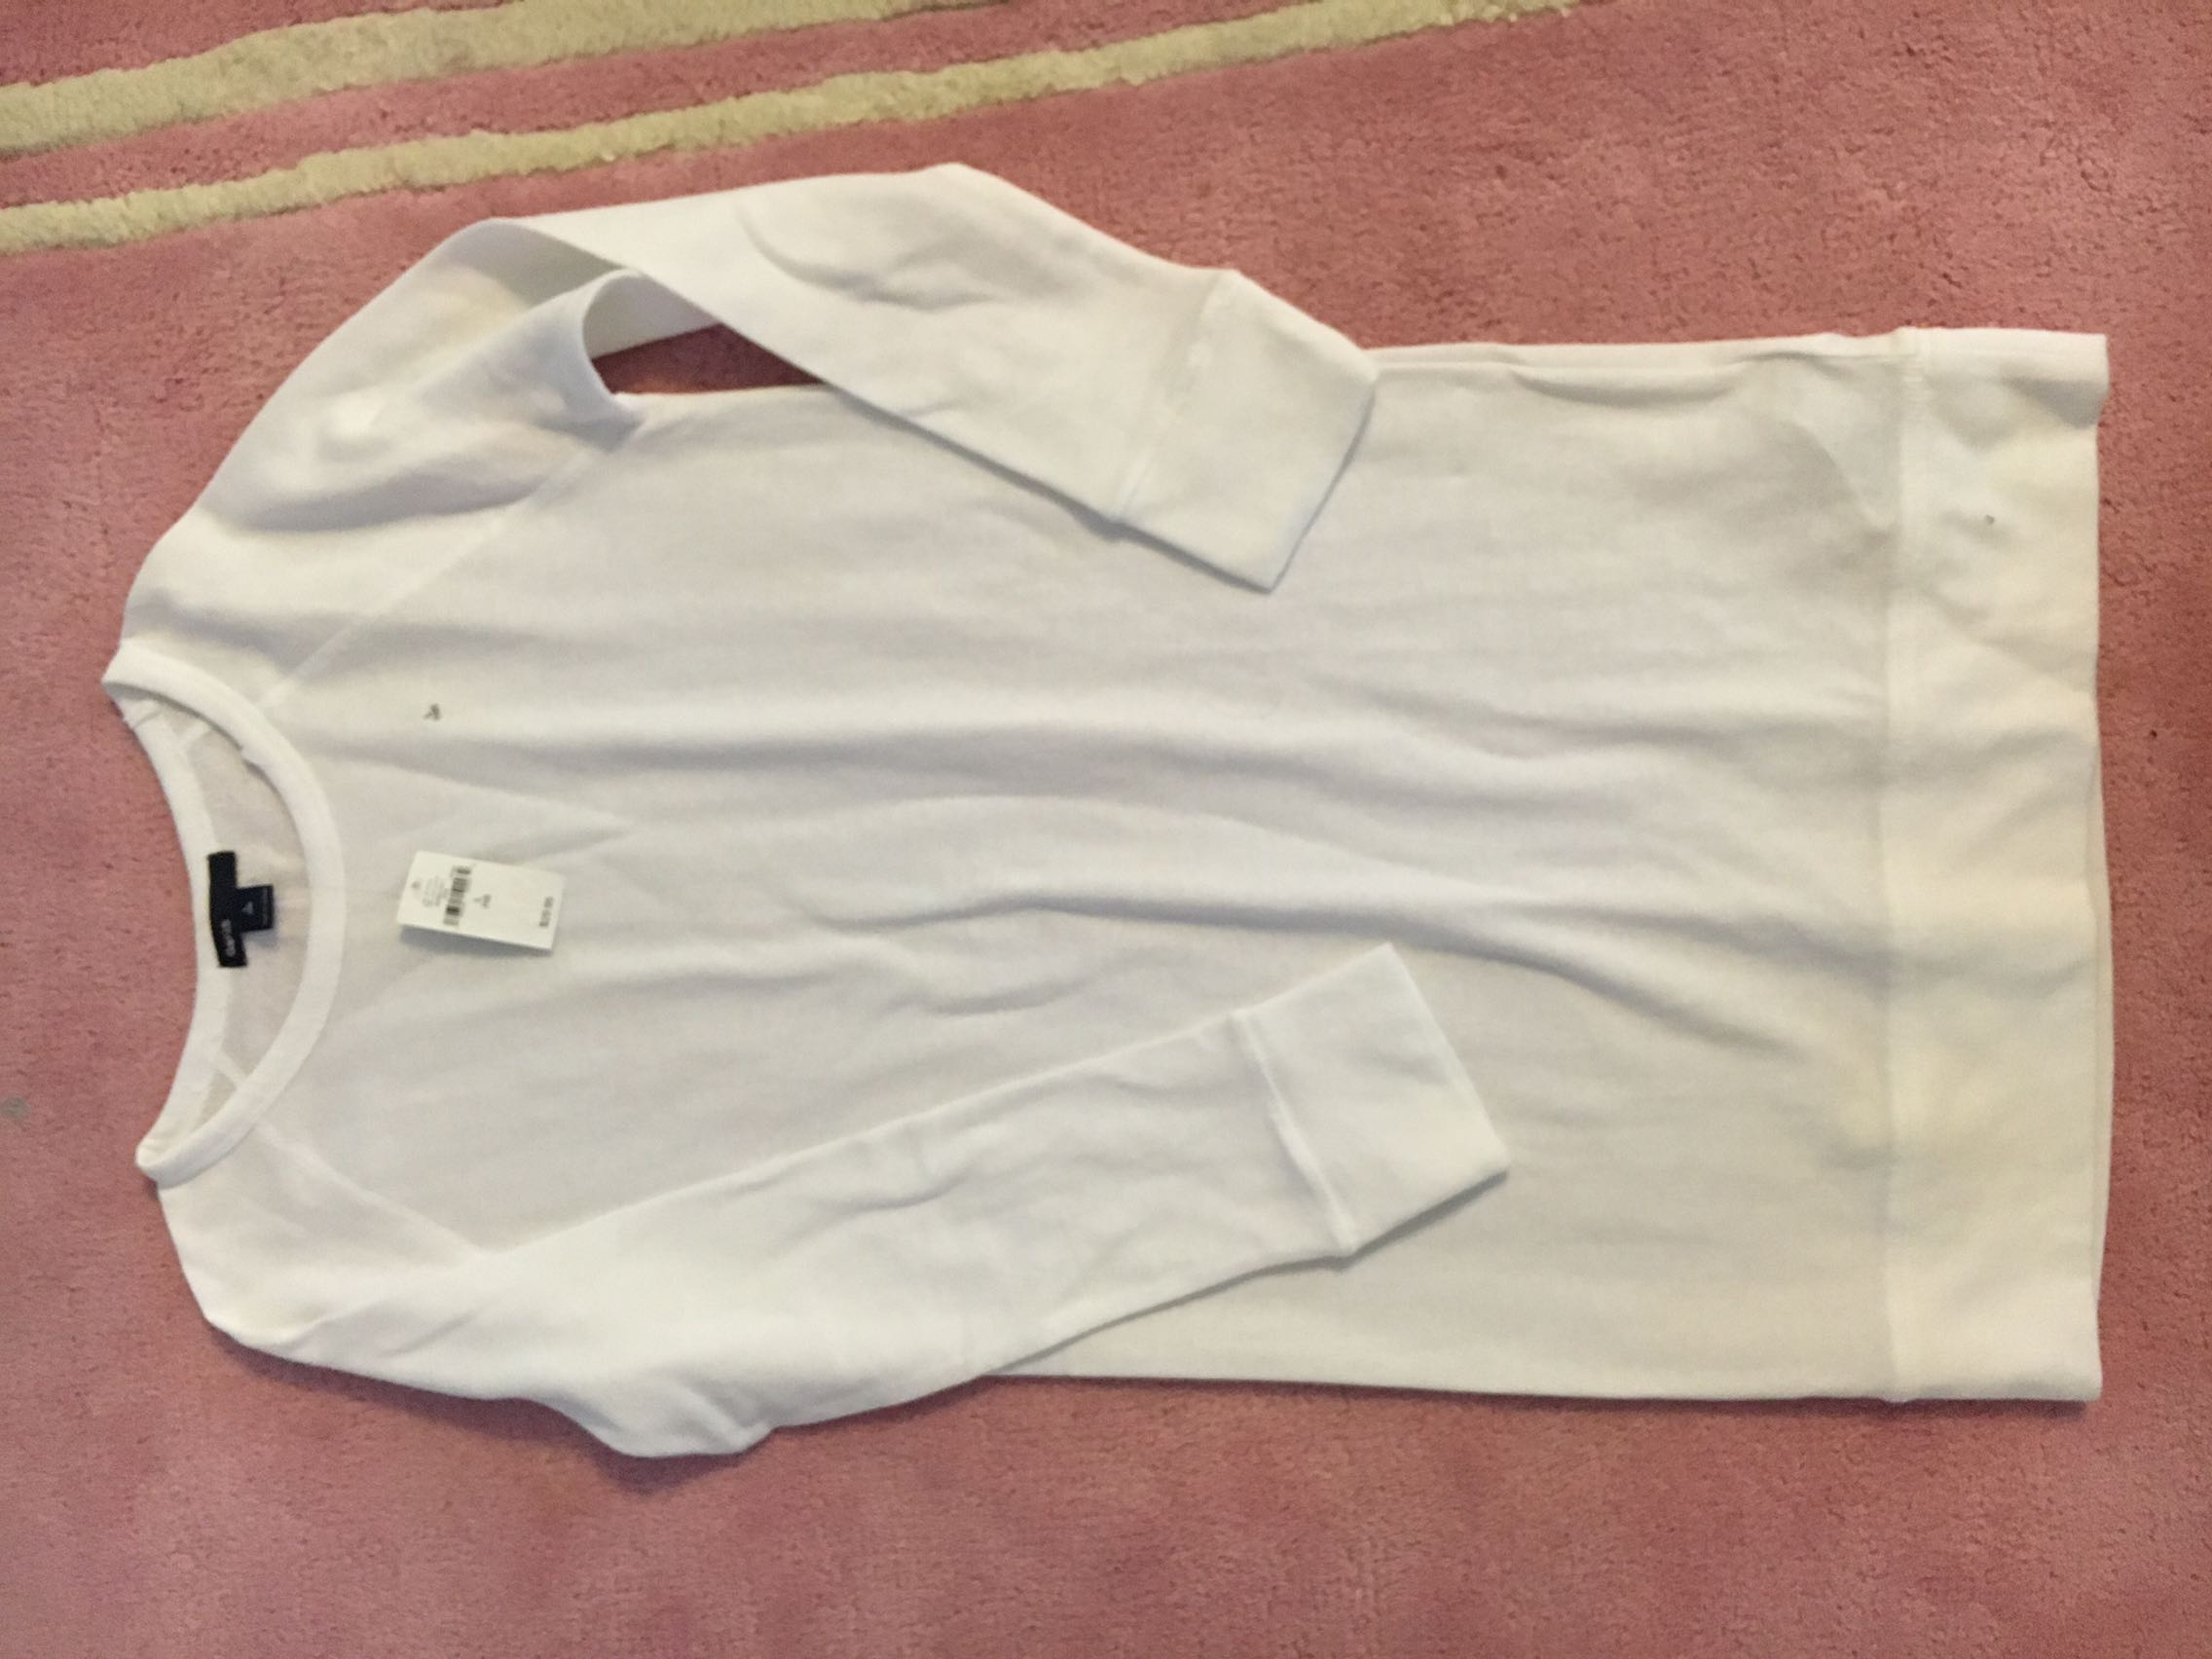 Nwt gap tunic/long shirt